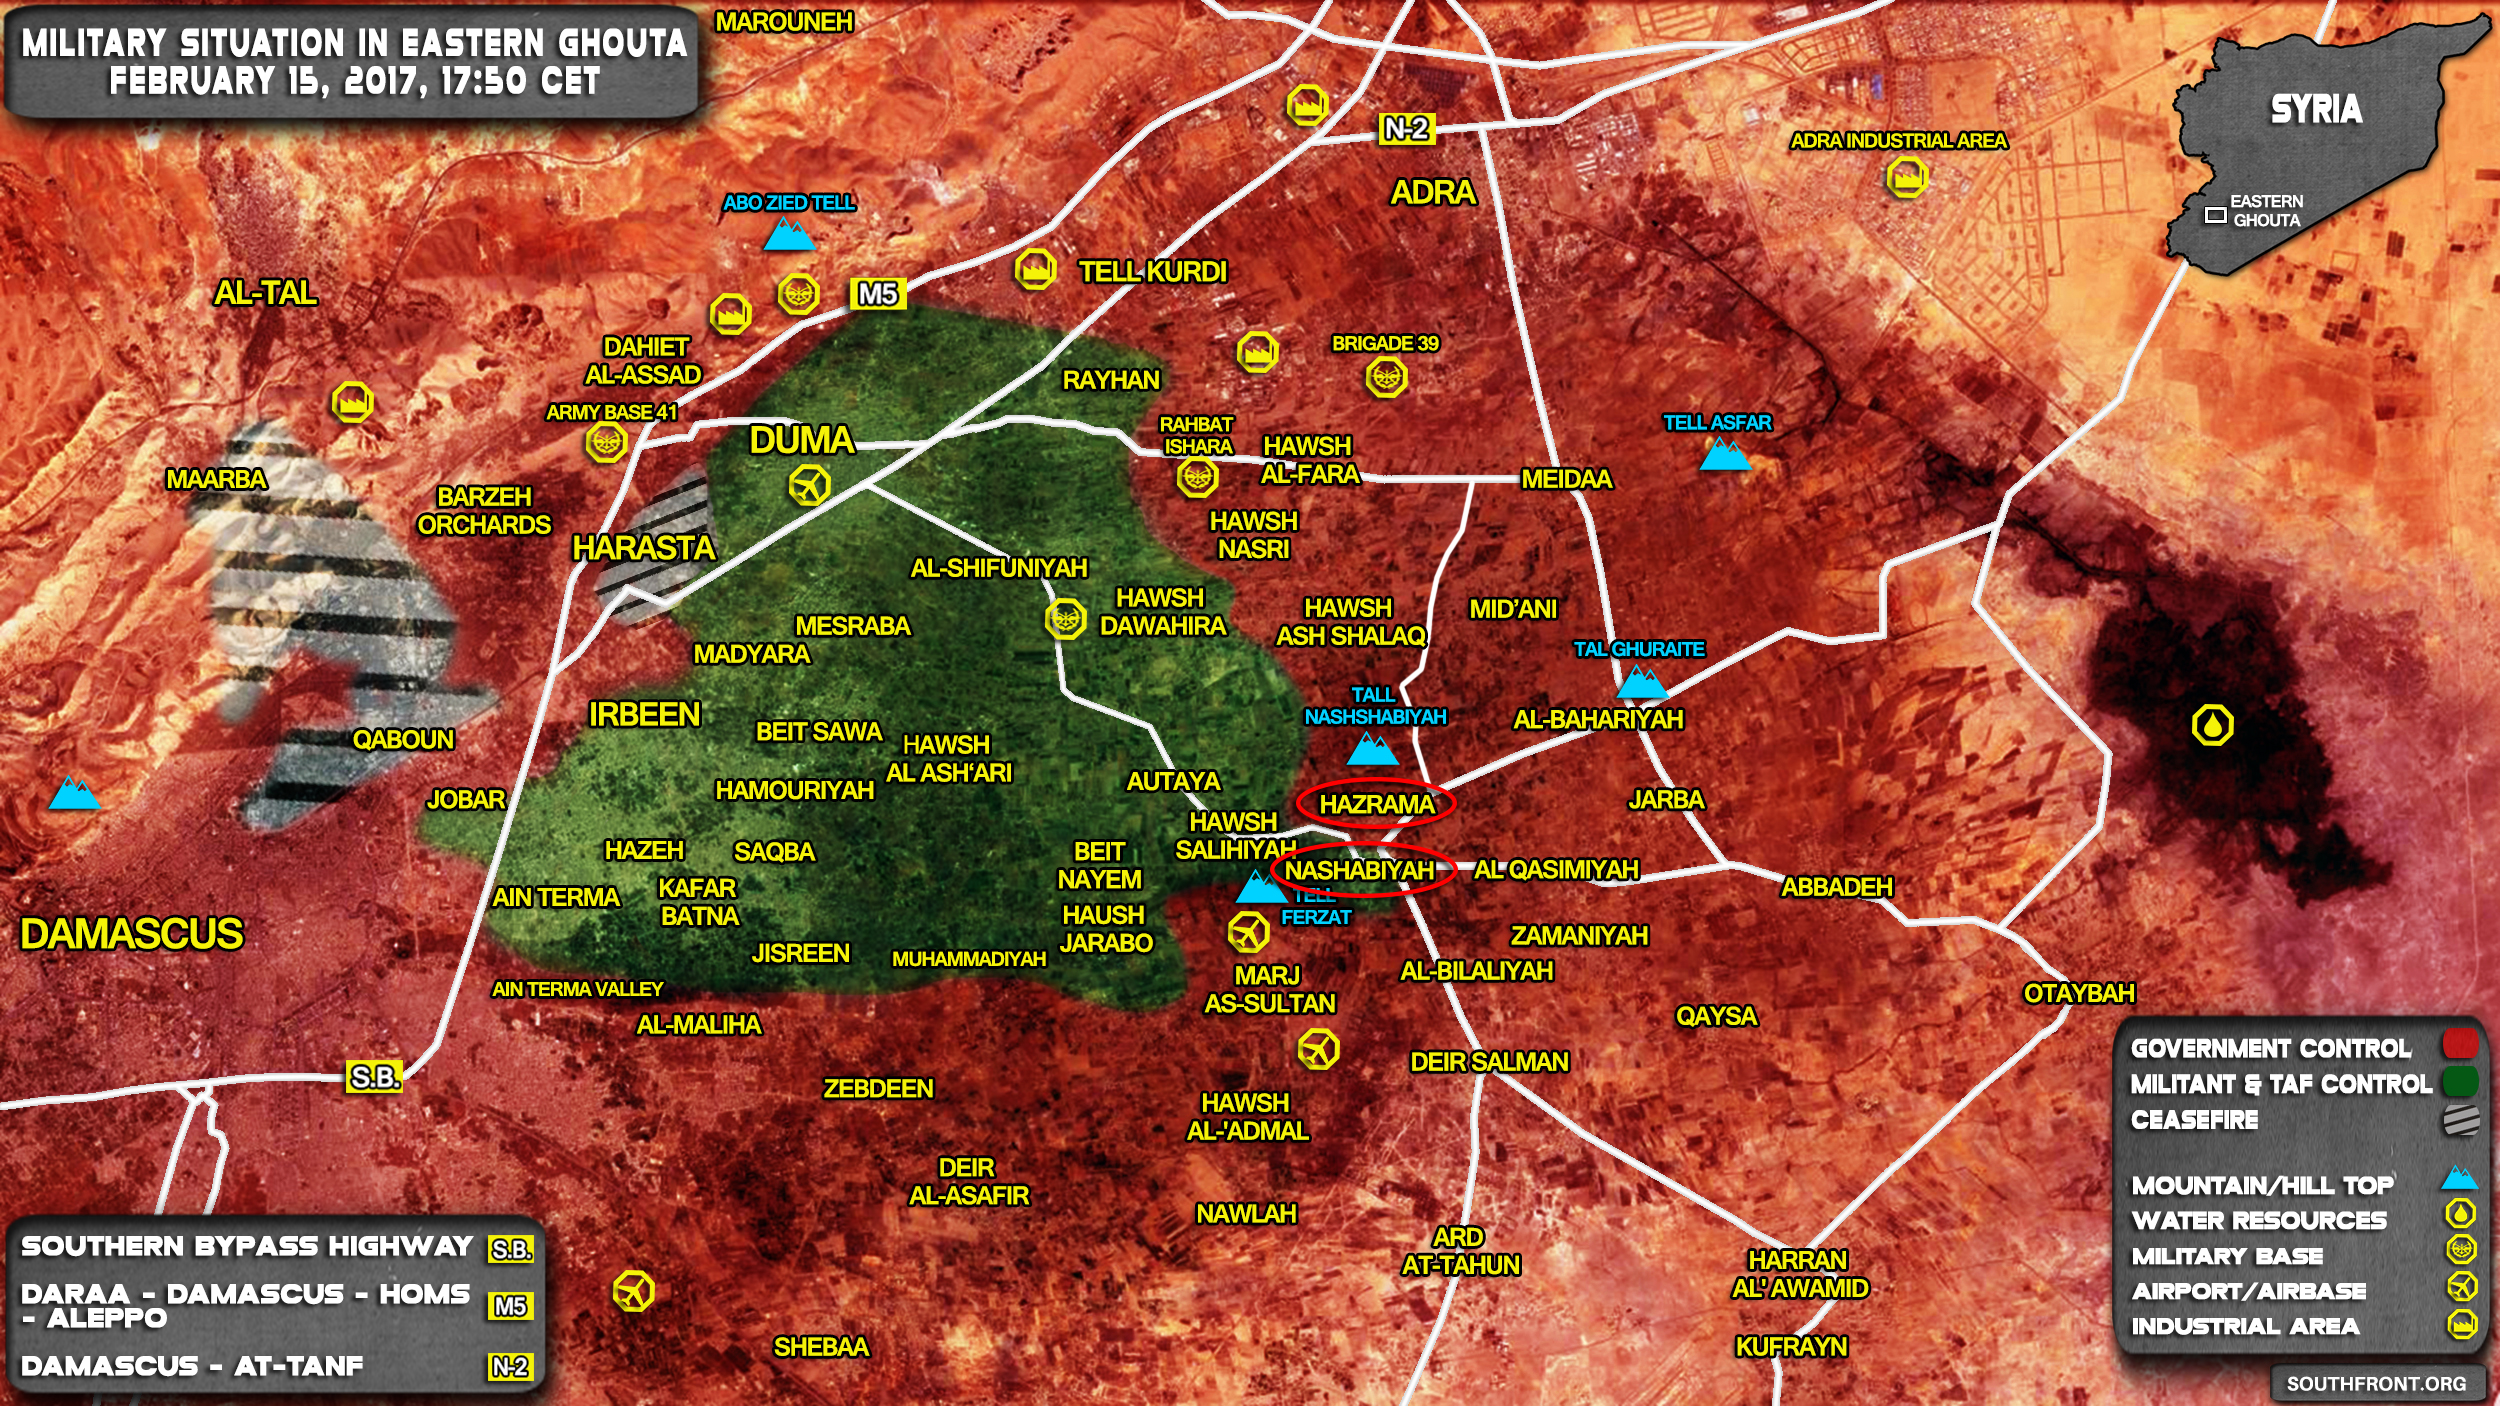 15feb_eastern_ghouta_Syria_War_Map